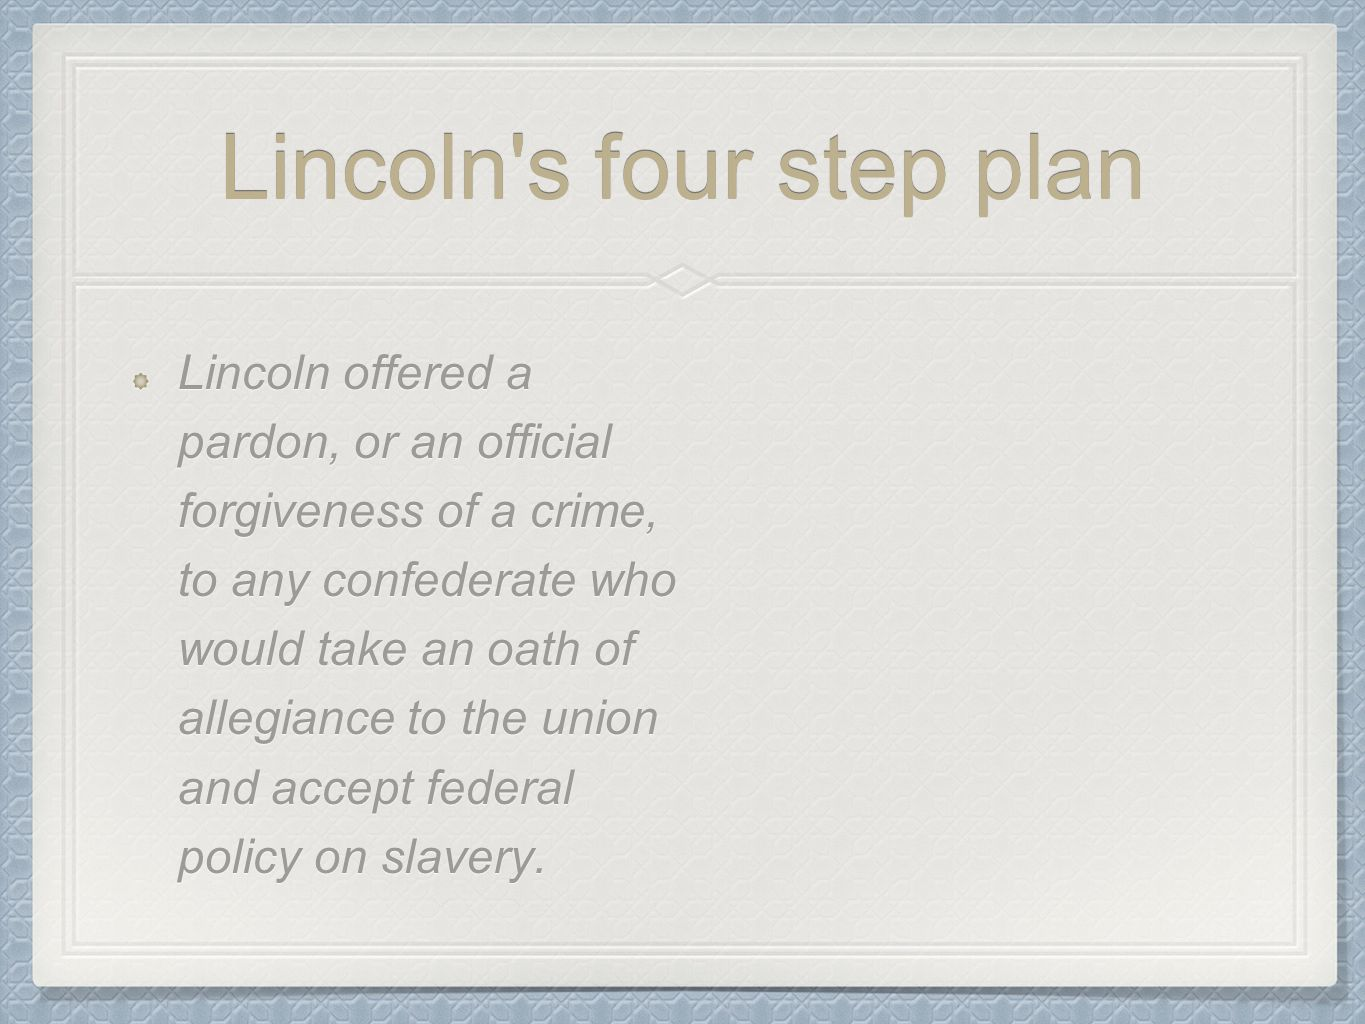 Lincoln s vision for reconstruction President Lincoln seemed to prefer reconstruction through the states themselves without assistance from Washington.